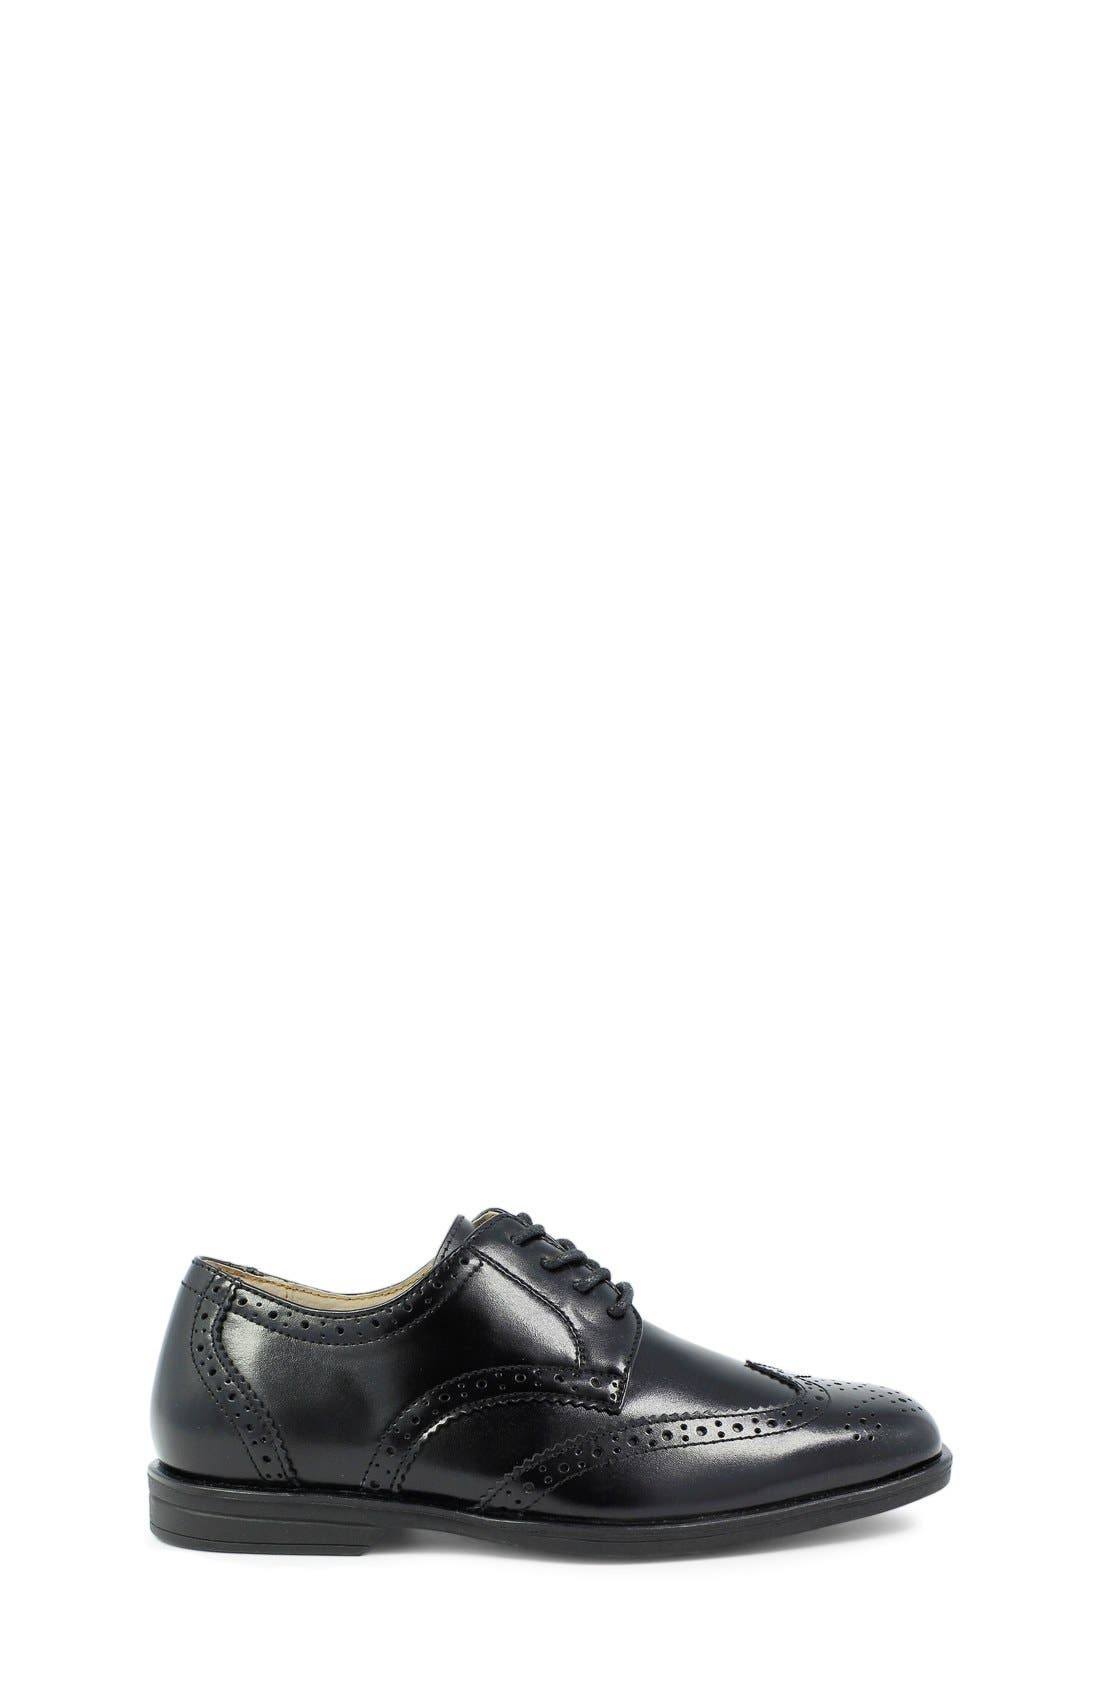 FLORSHEIM, 'Reveal' Wingtip Oxford, Alternate thumbnail 3, color, BLACK LEATHER